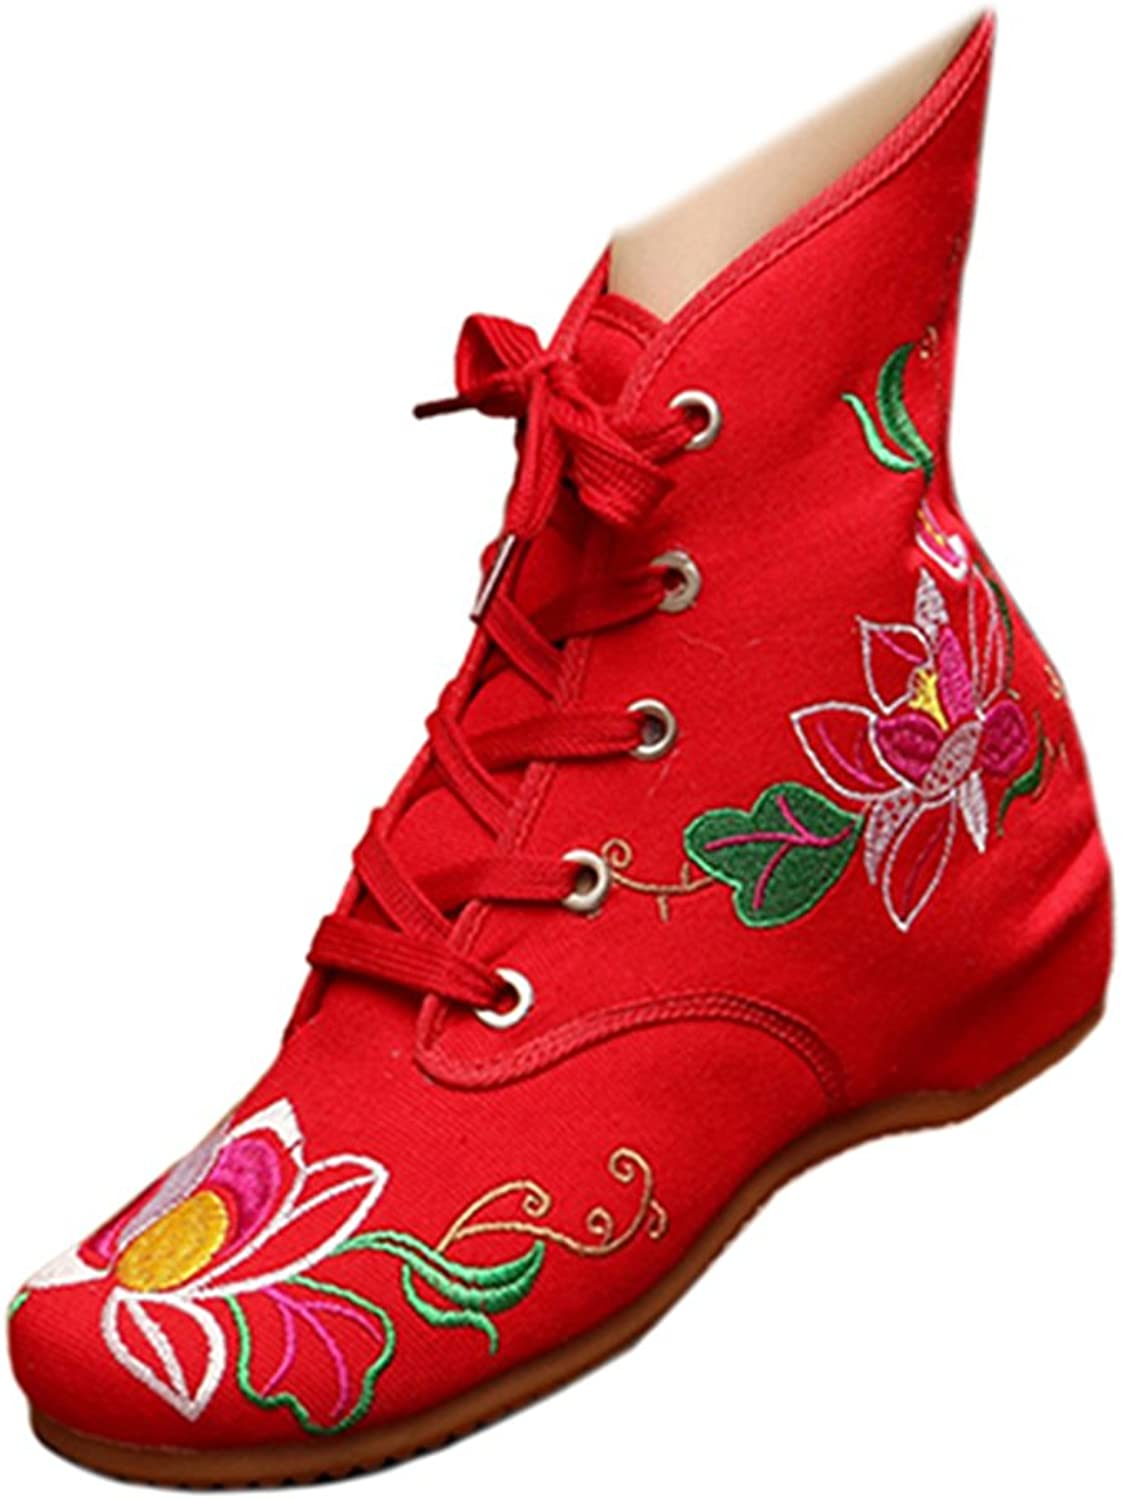 Shenghuajie Vintage Beijing Cloth shoes Embroidered Boots 11-01 red